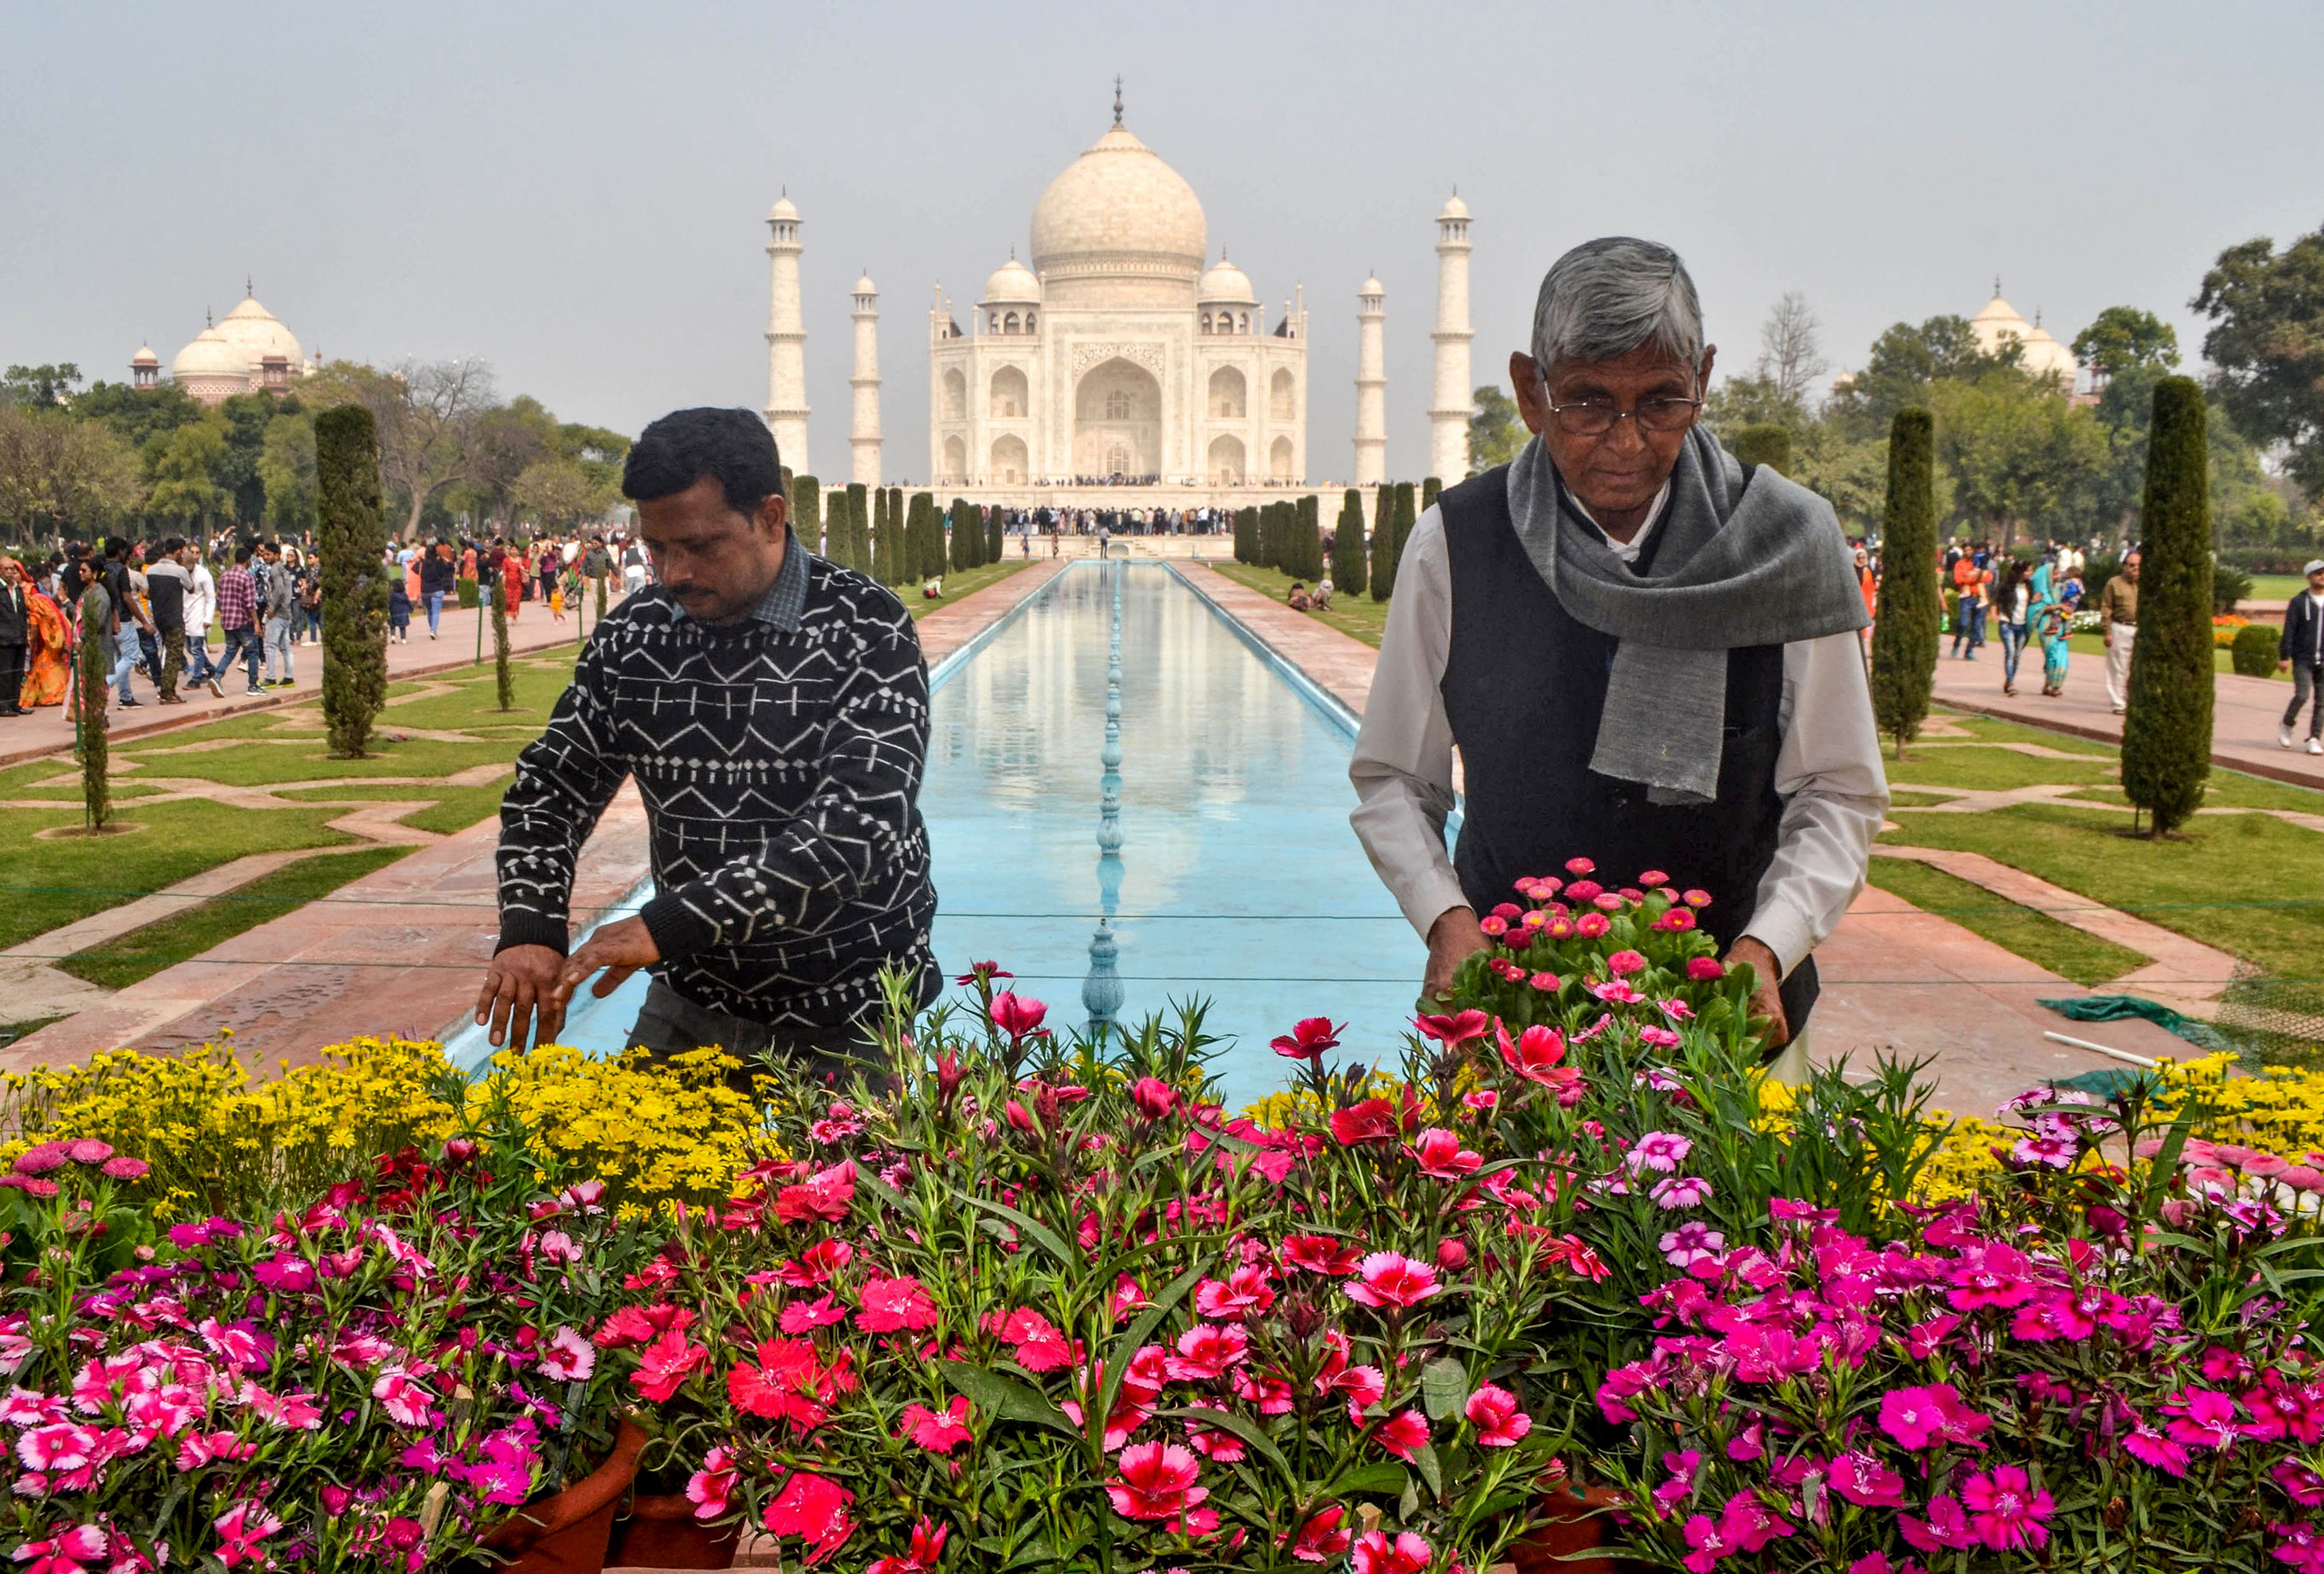 Workers plant new flowers in front of the Taj Mahal on February 22.